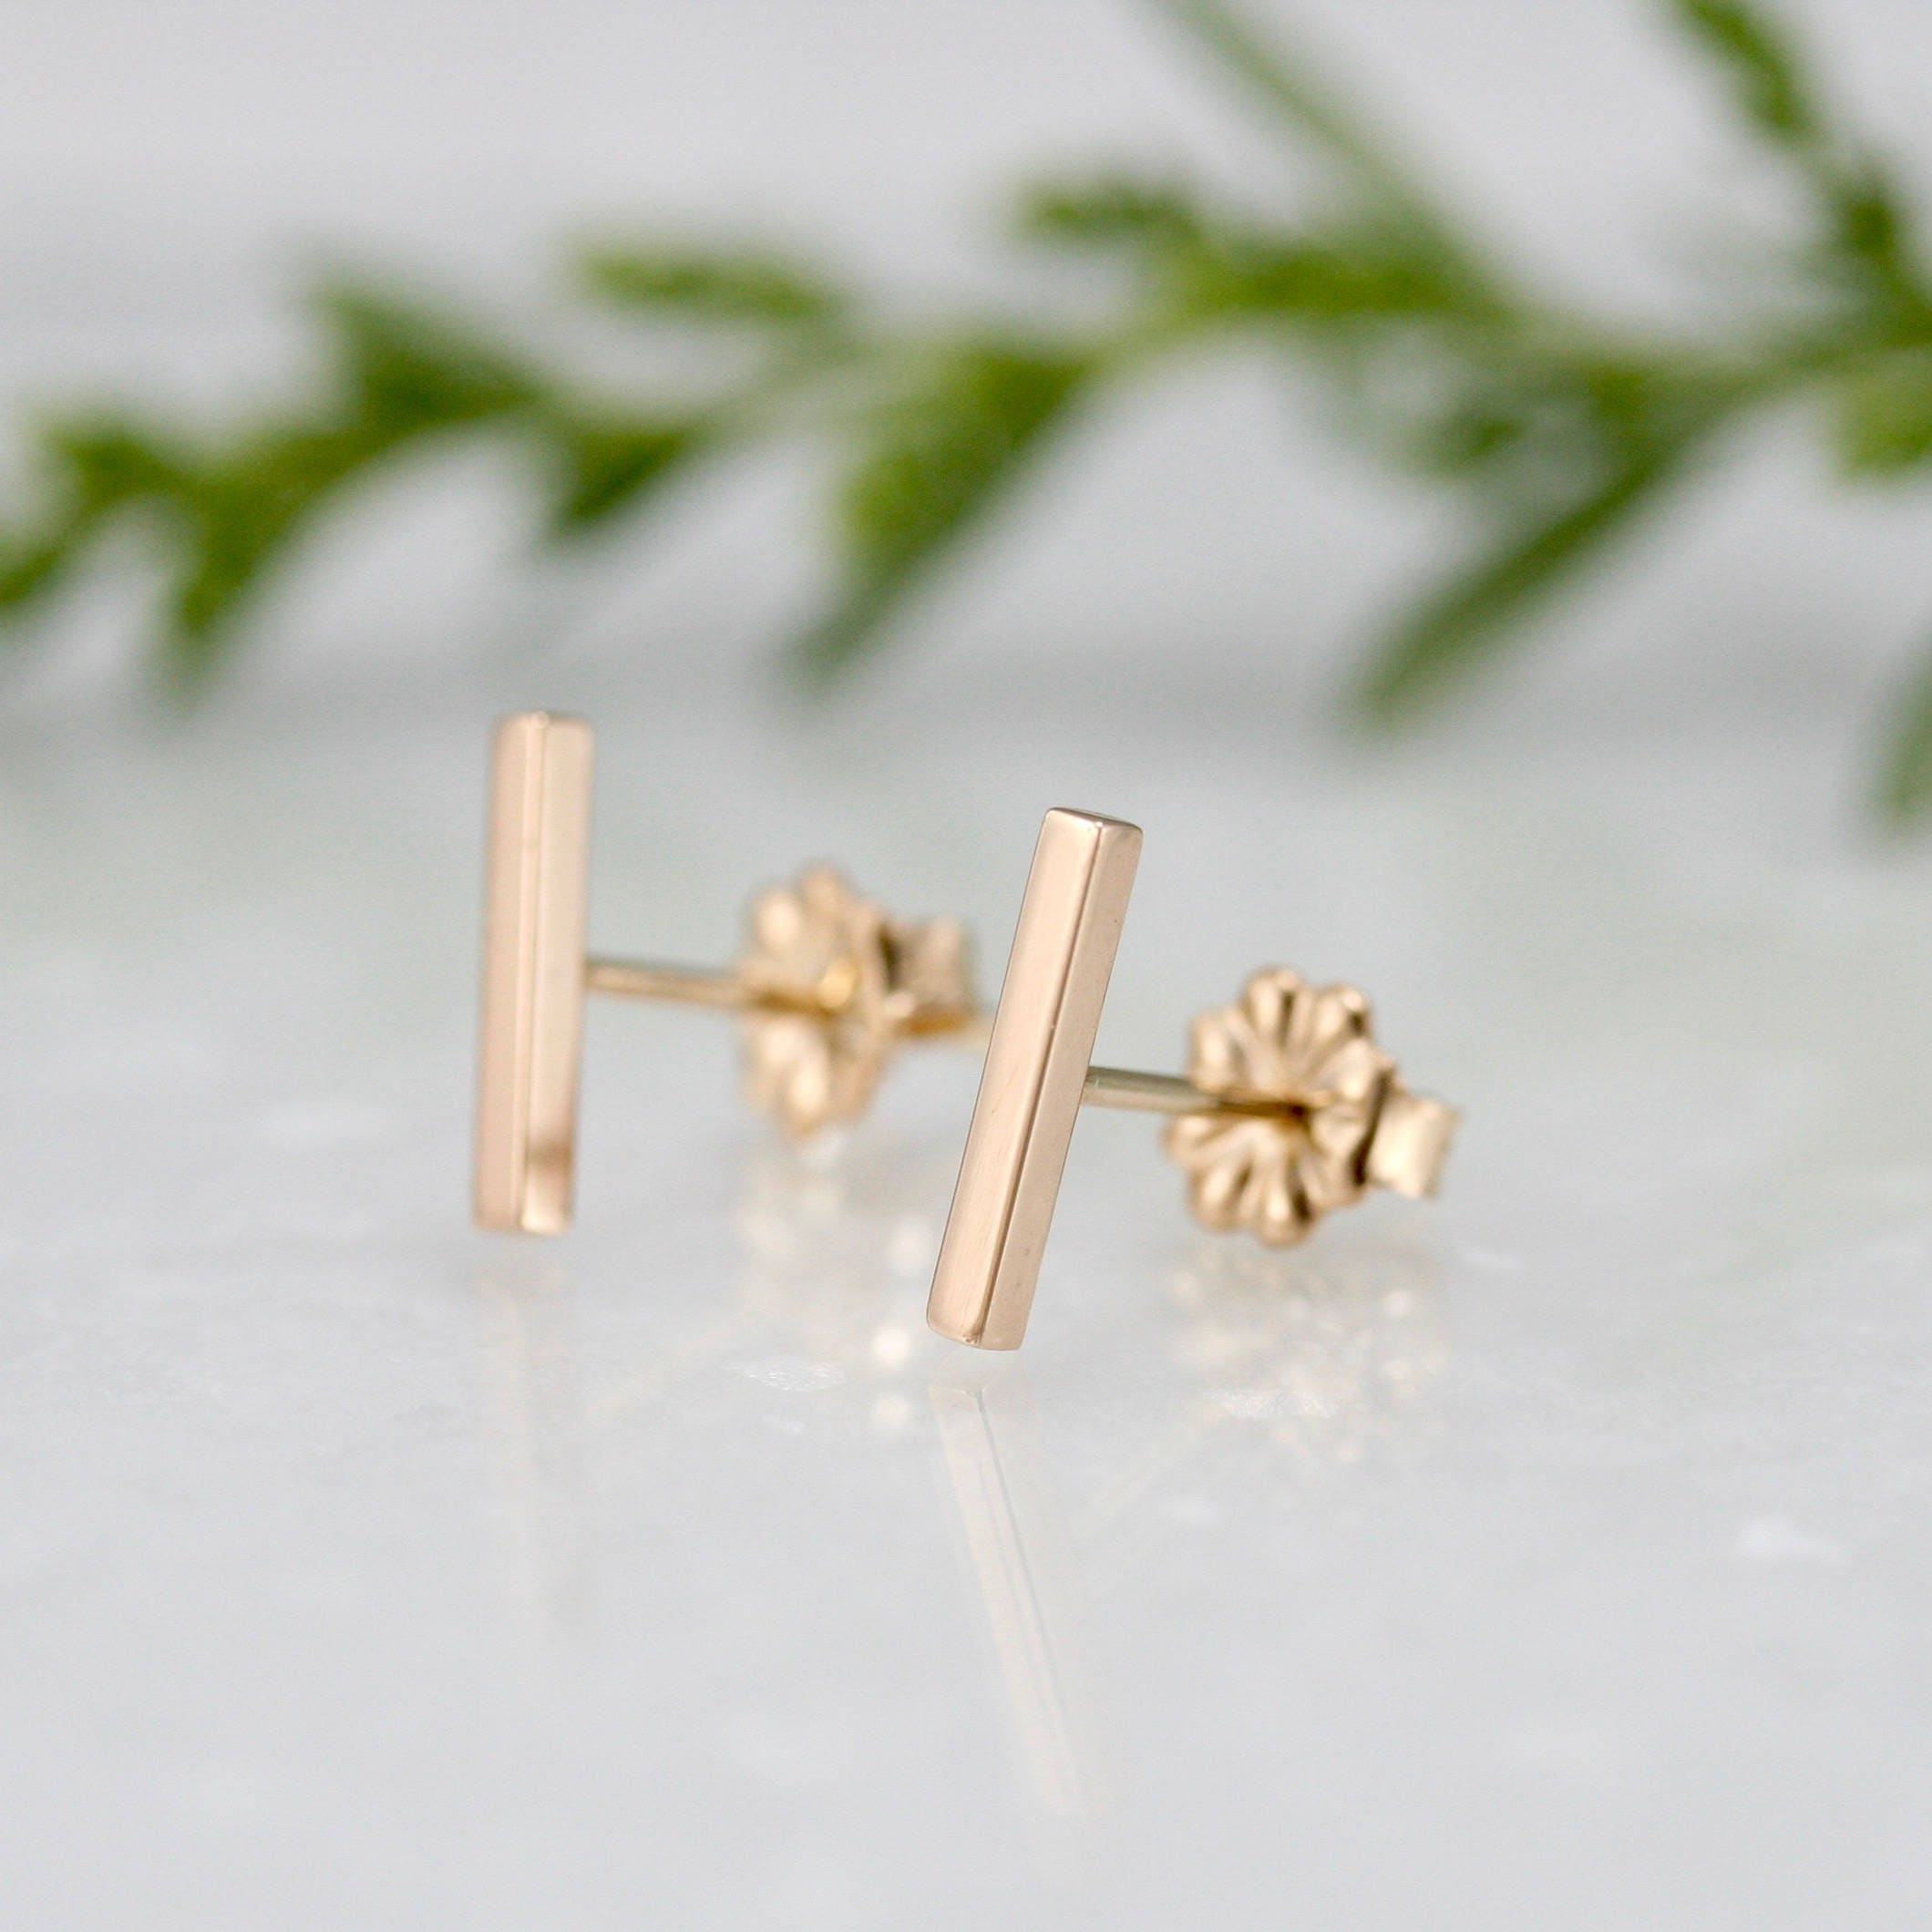 jewellery yellow products bar style silver brass band stud online with hook sterling line rose gold a plated simple detail shop and earring